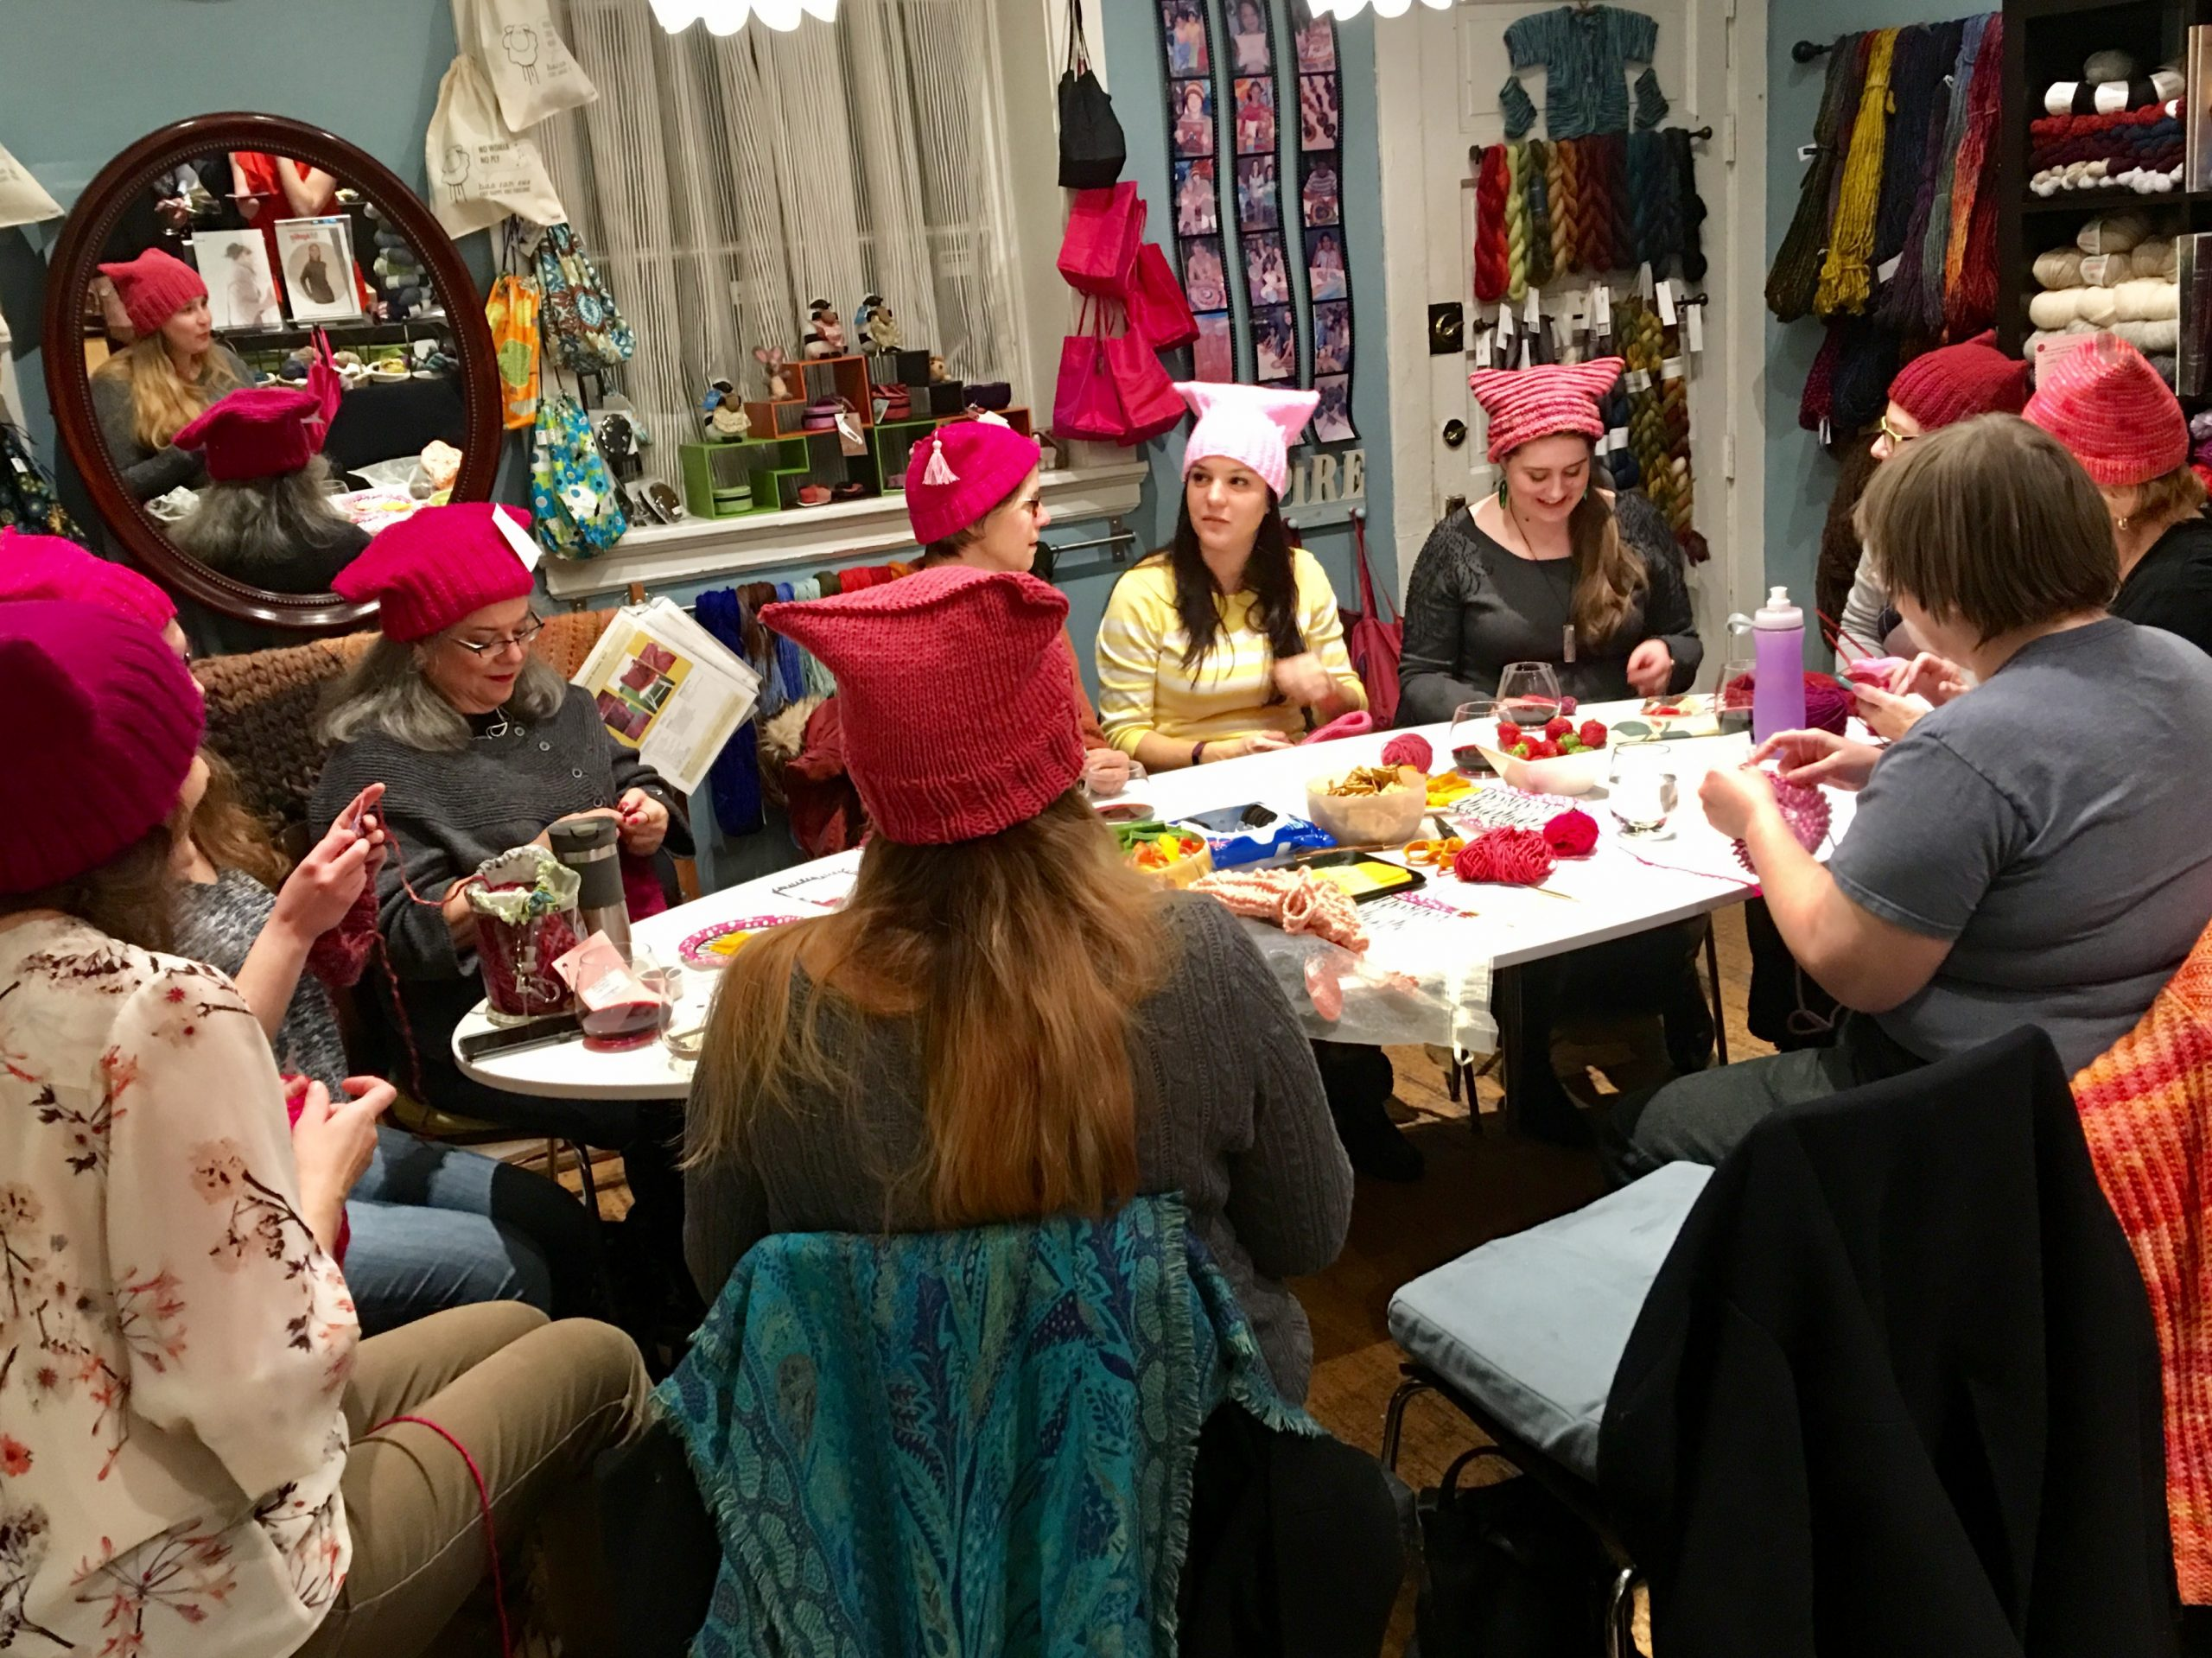 Sister Arts friends and customers knit pussyhats at the 'Marcher Send-Off Party.'